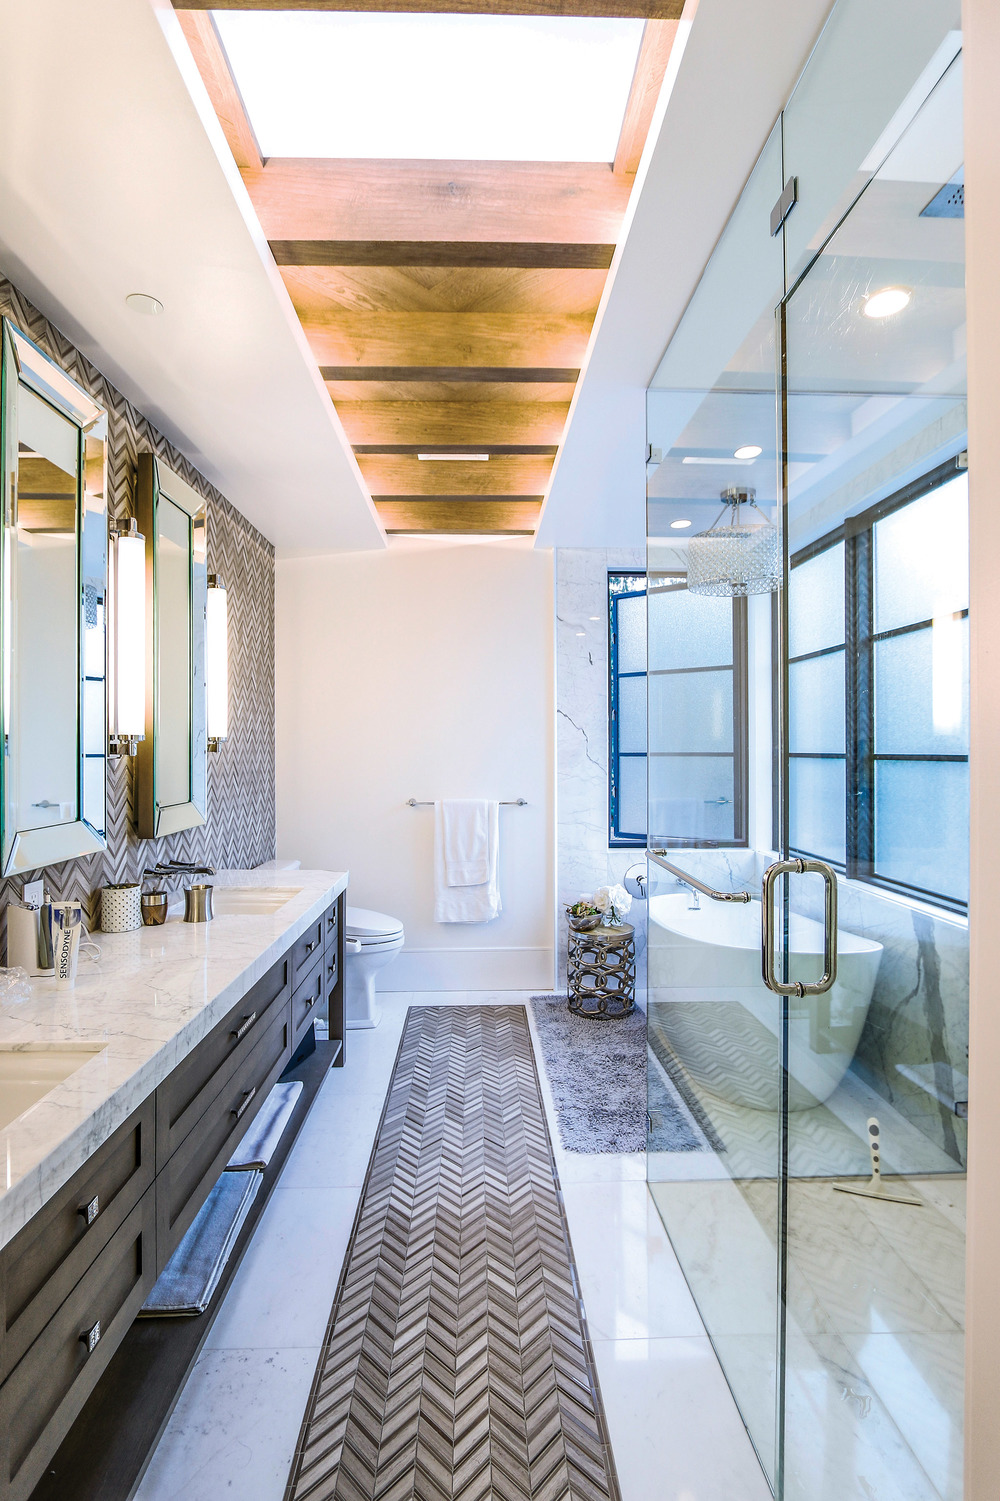 Chic and elegant, a vein grey marble in classic herringbone pattern is the feature seen on the floor and back wall. Swarovski crystals are embedded in both the ceiling lights and cabinet pulls.